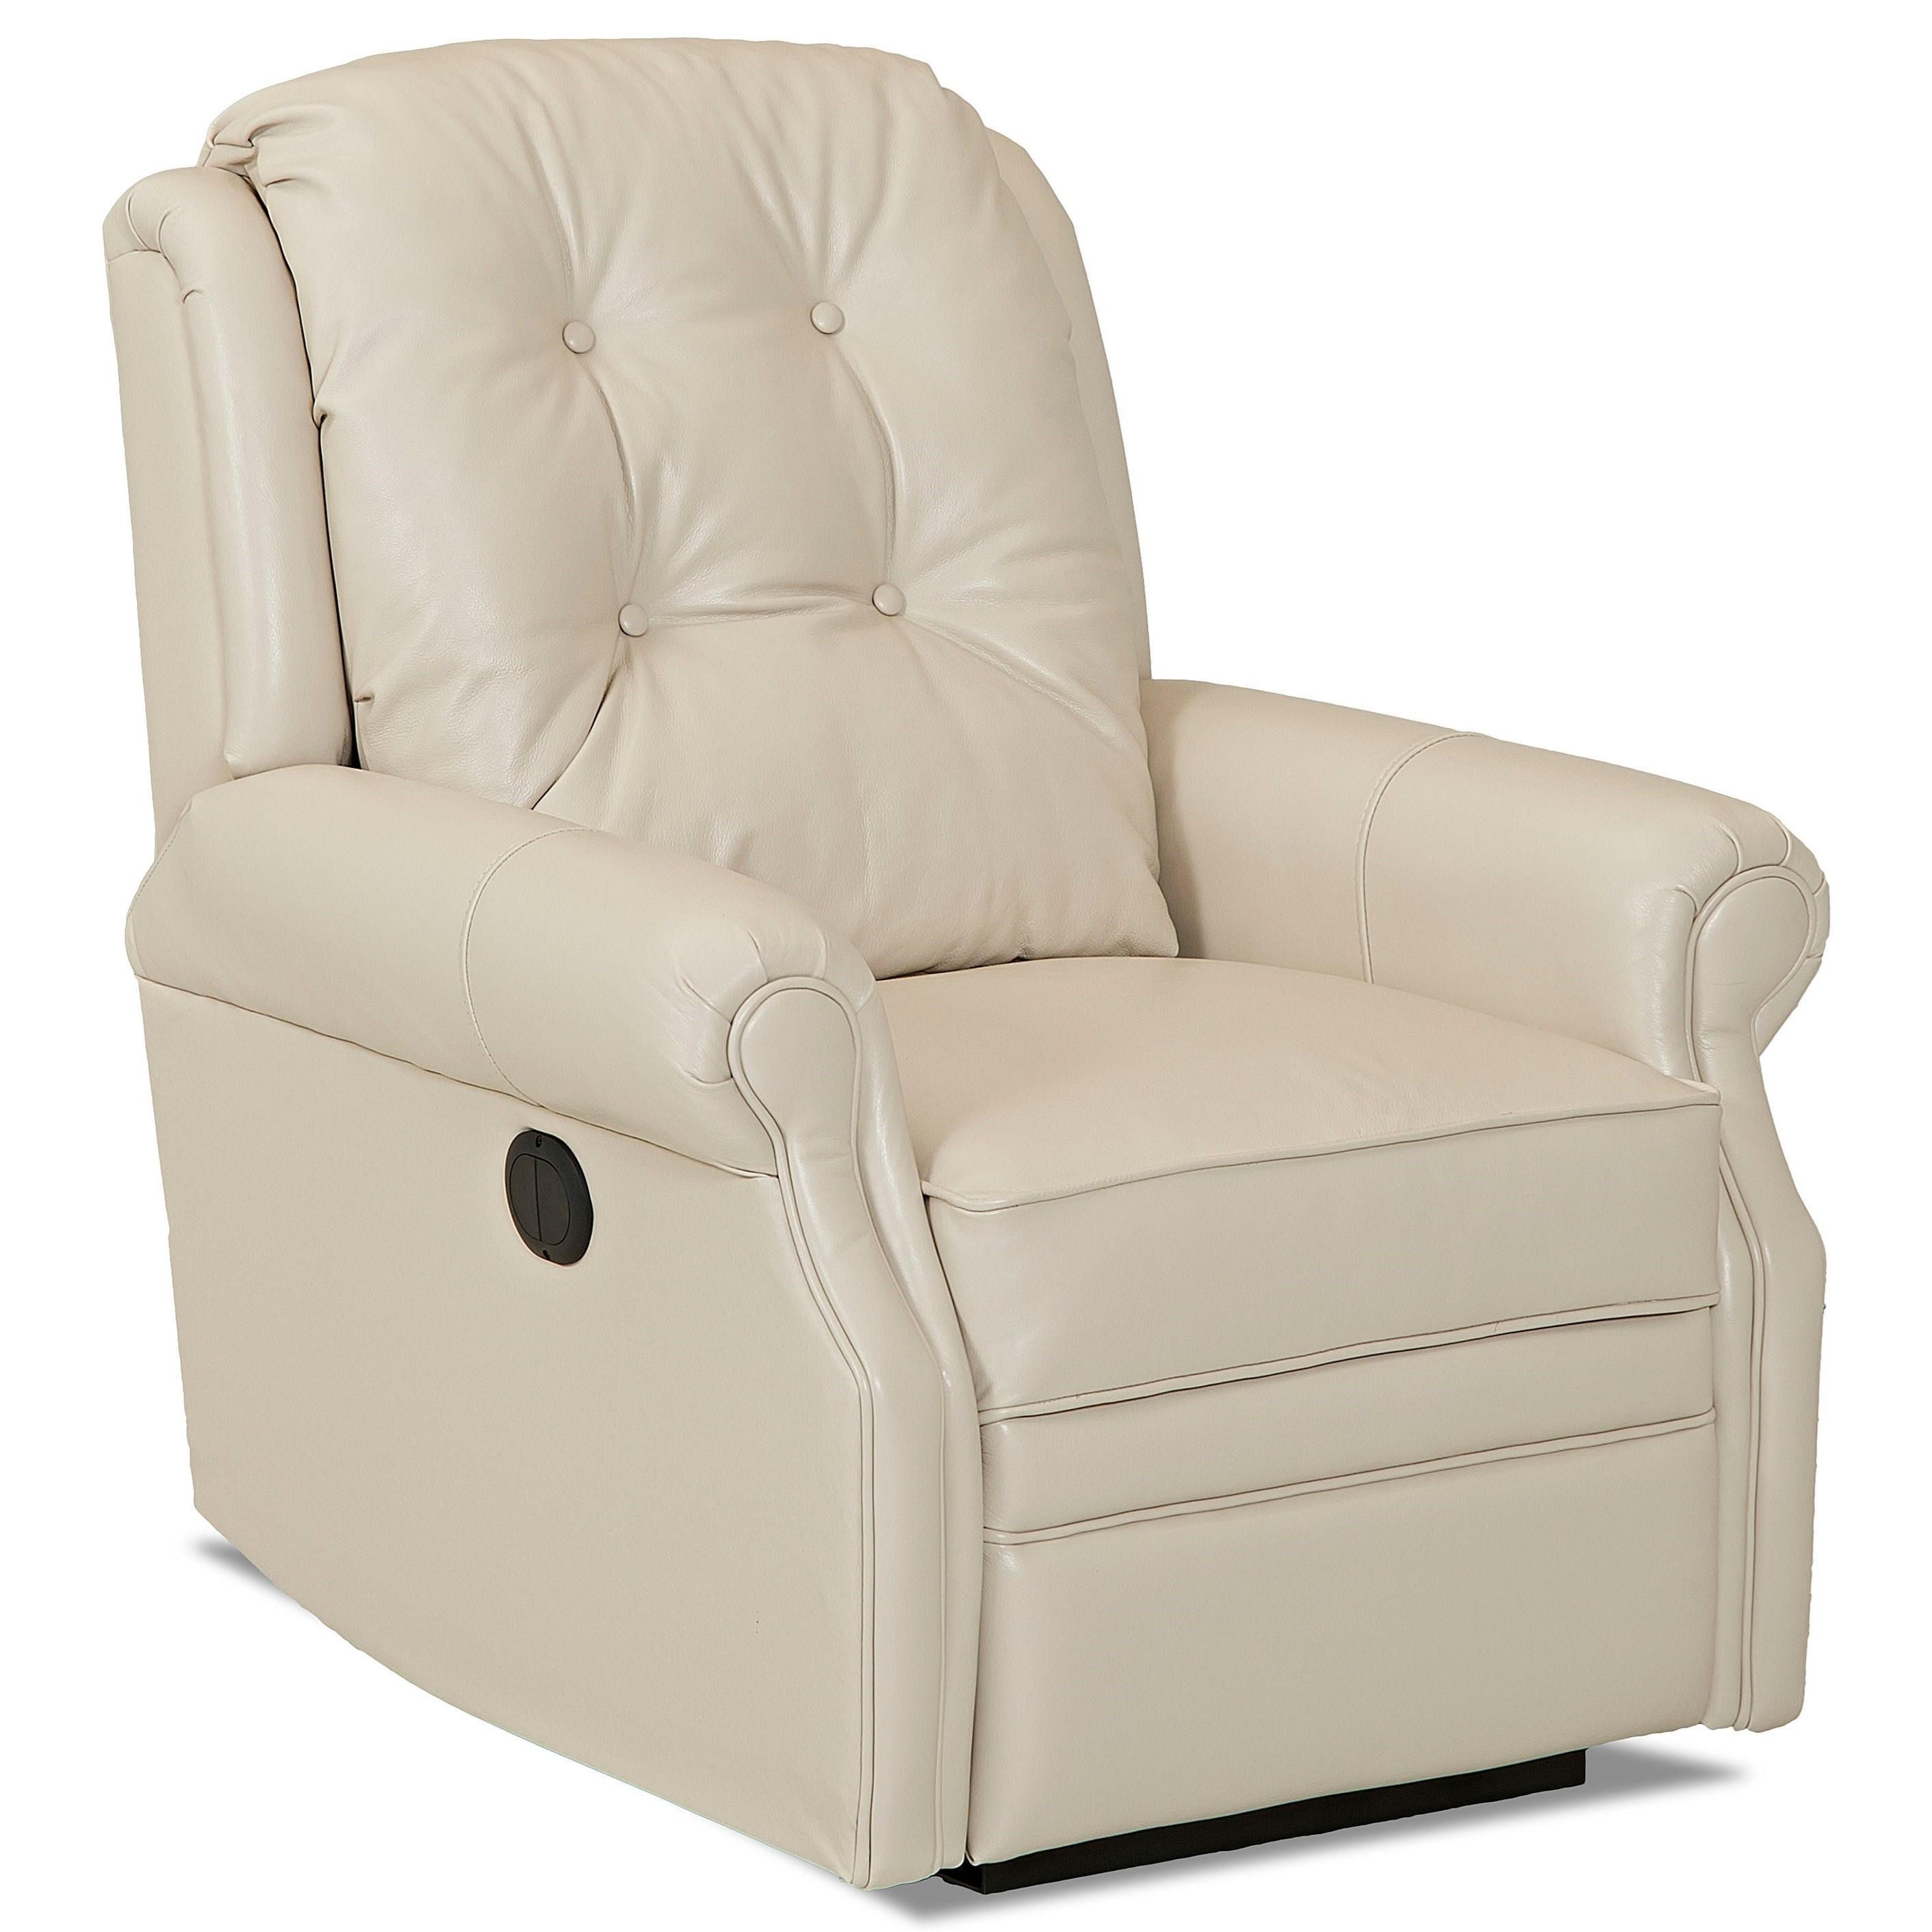 Sand Key Power Reclining Chair by Klaussner at Catalog Outlet